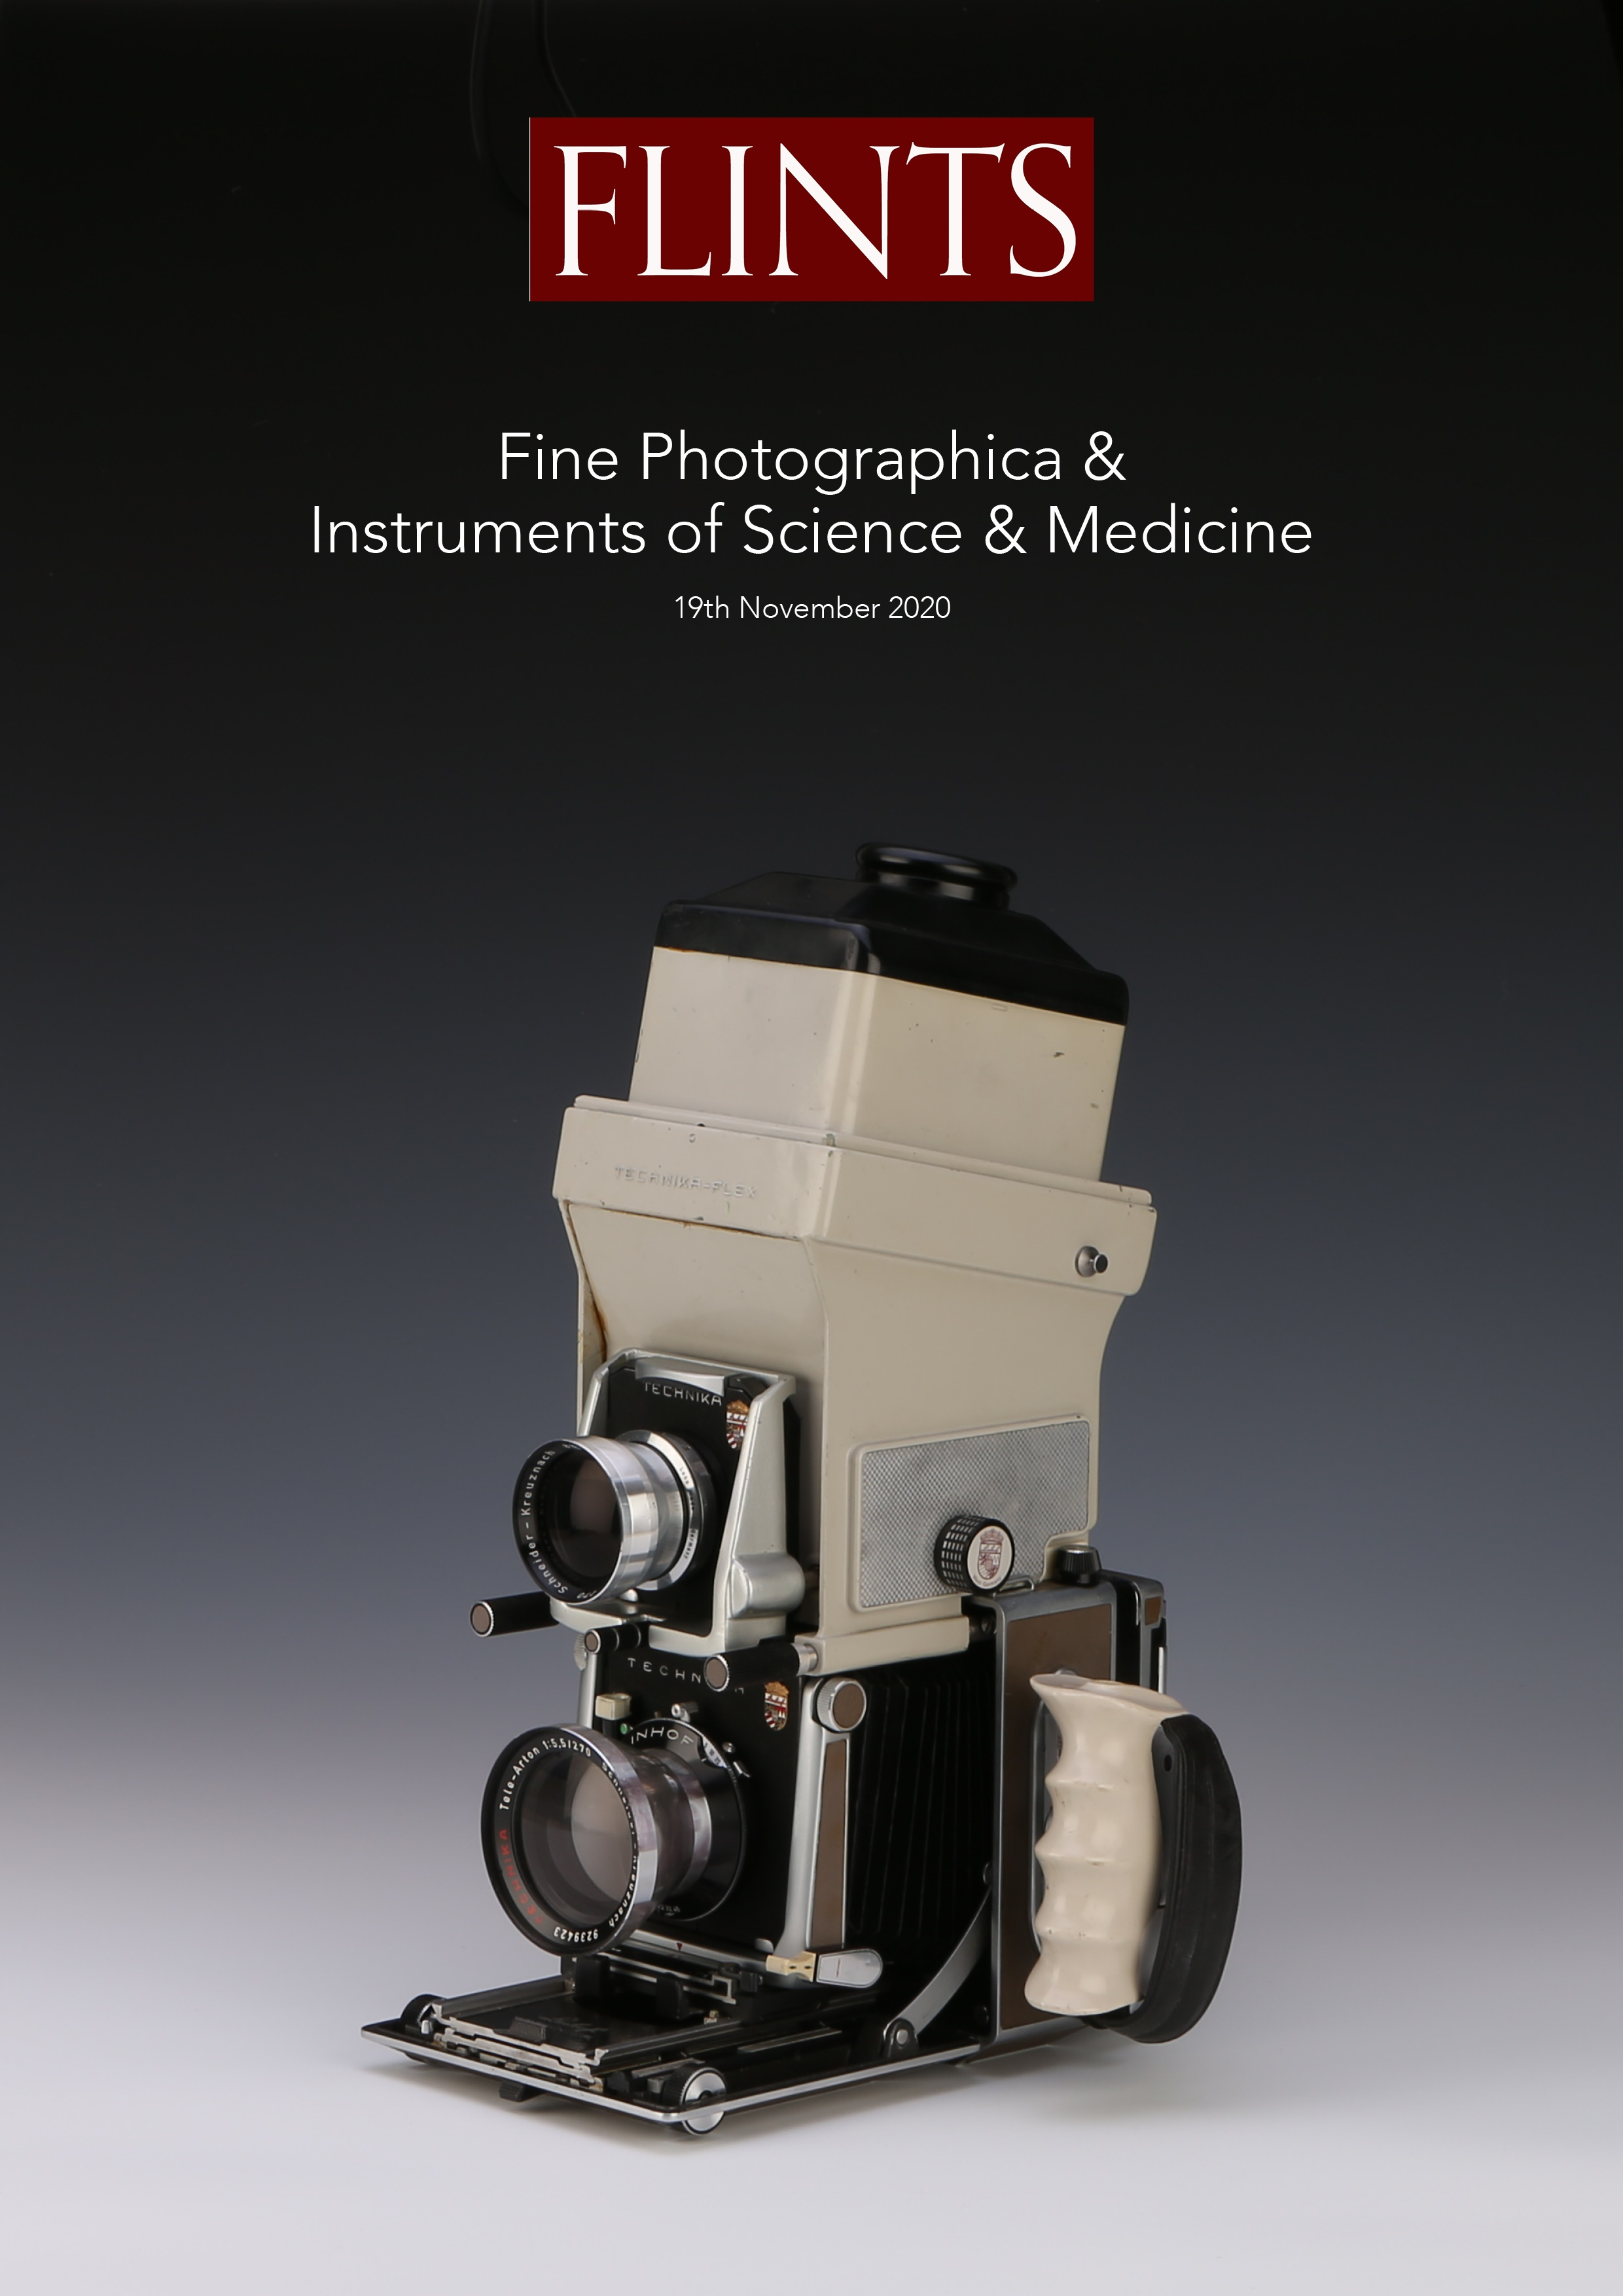 Fine Photographica & Instruments of Science